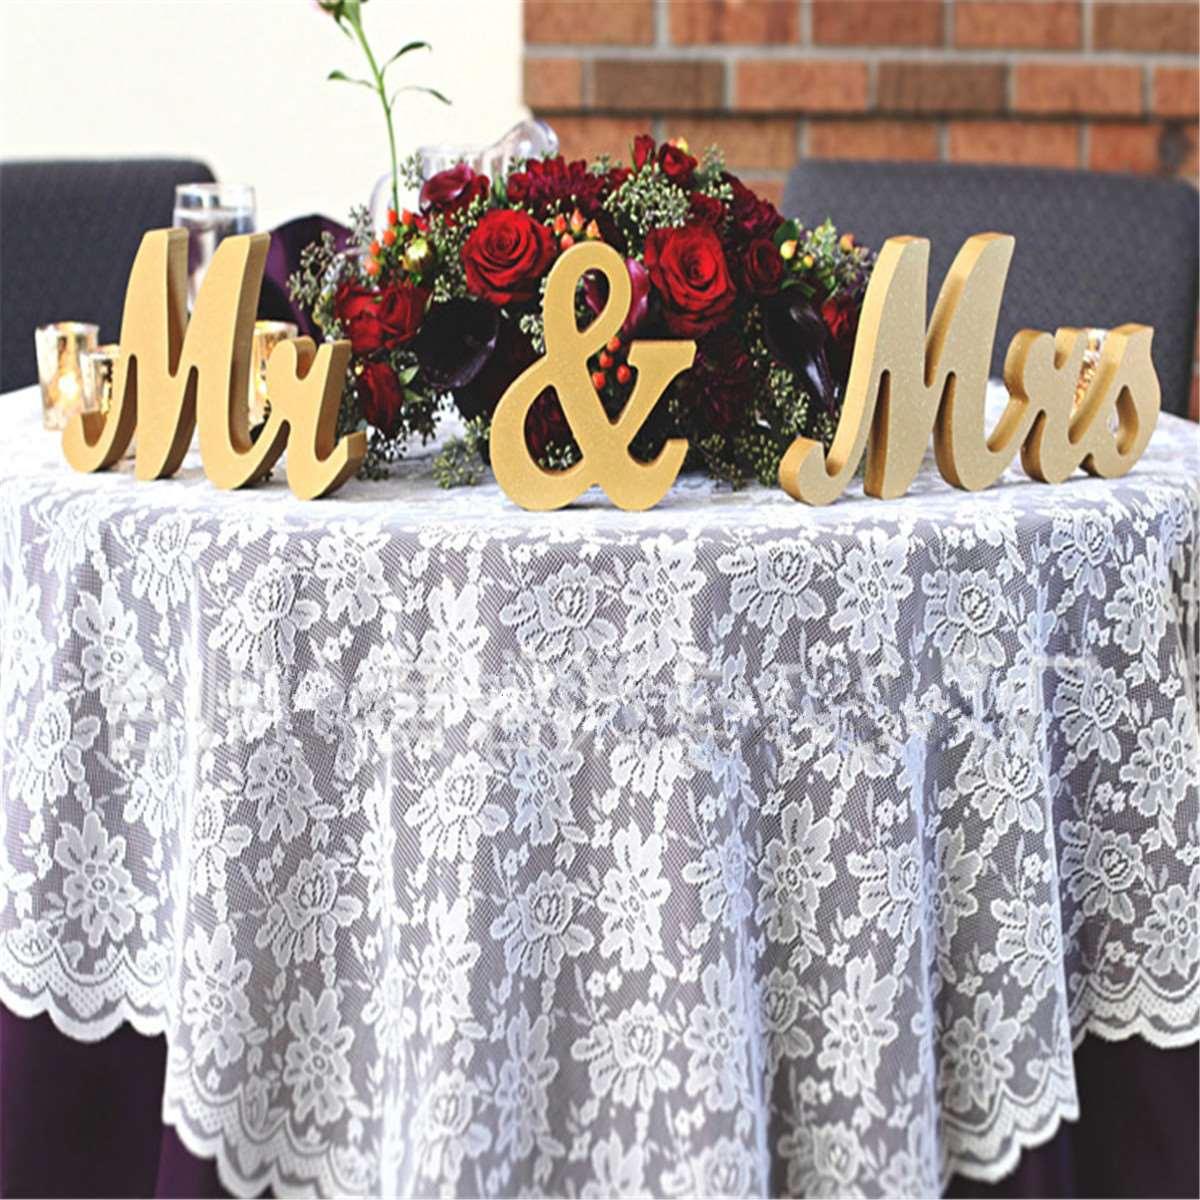 Gold Wooden Mr & Mrs Standing Letters Wedding Table Centrepiece ...